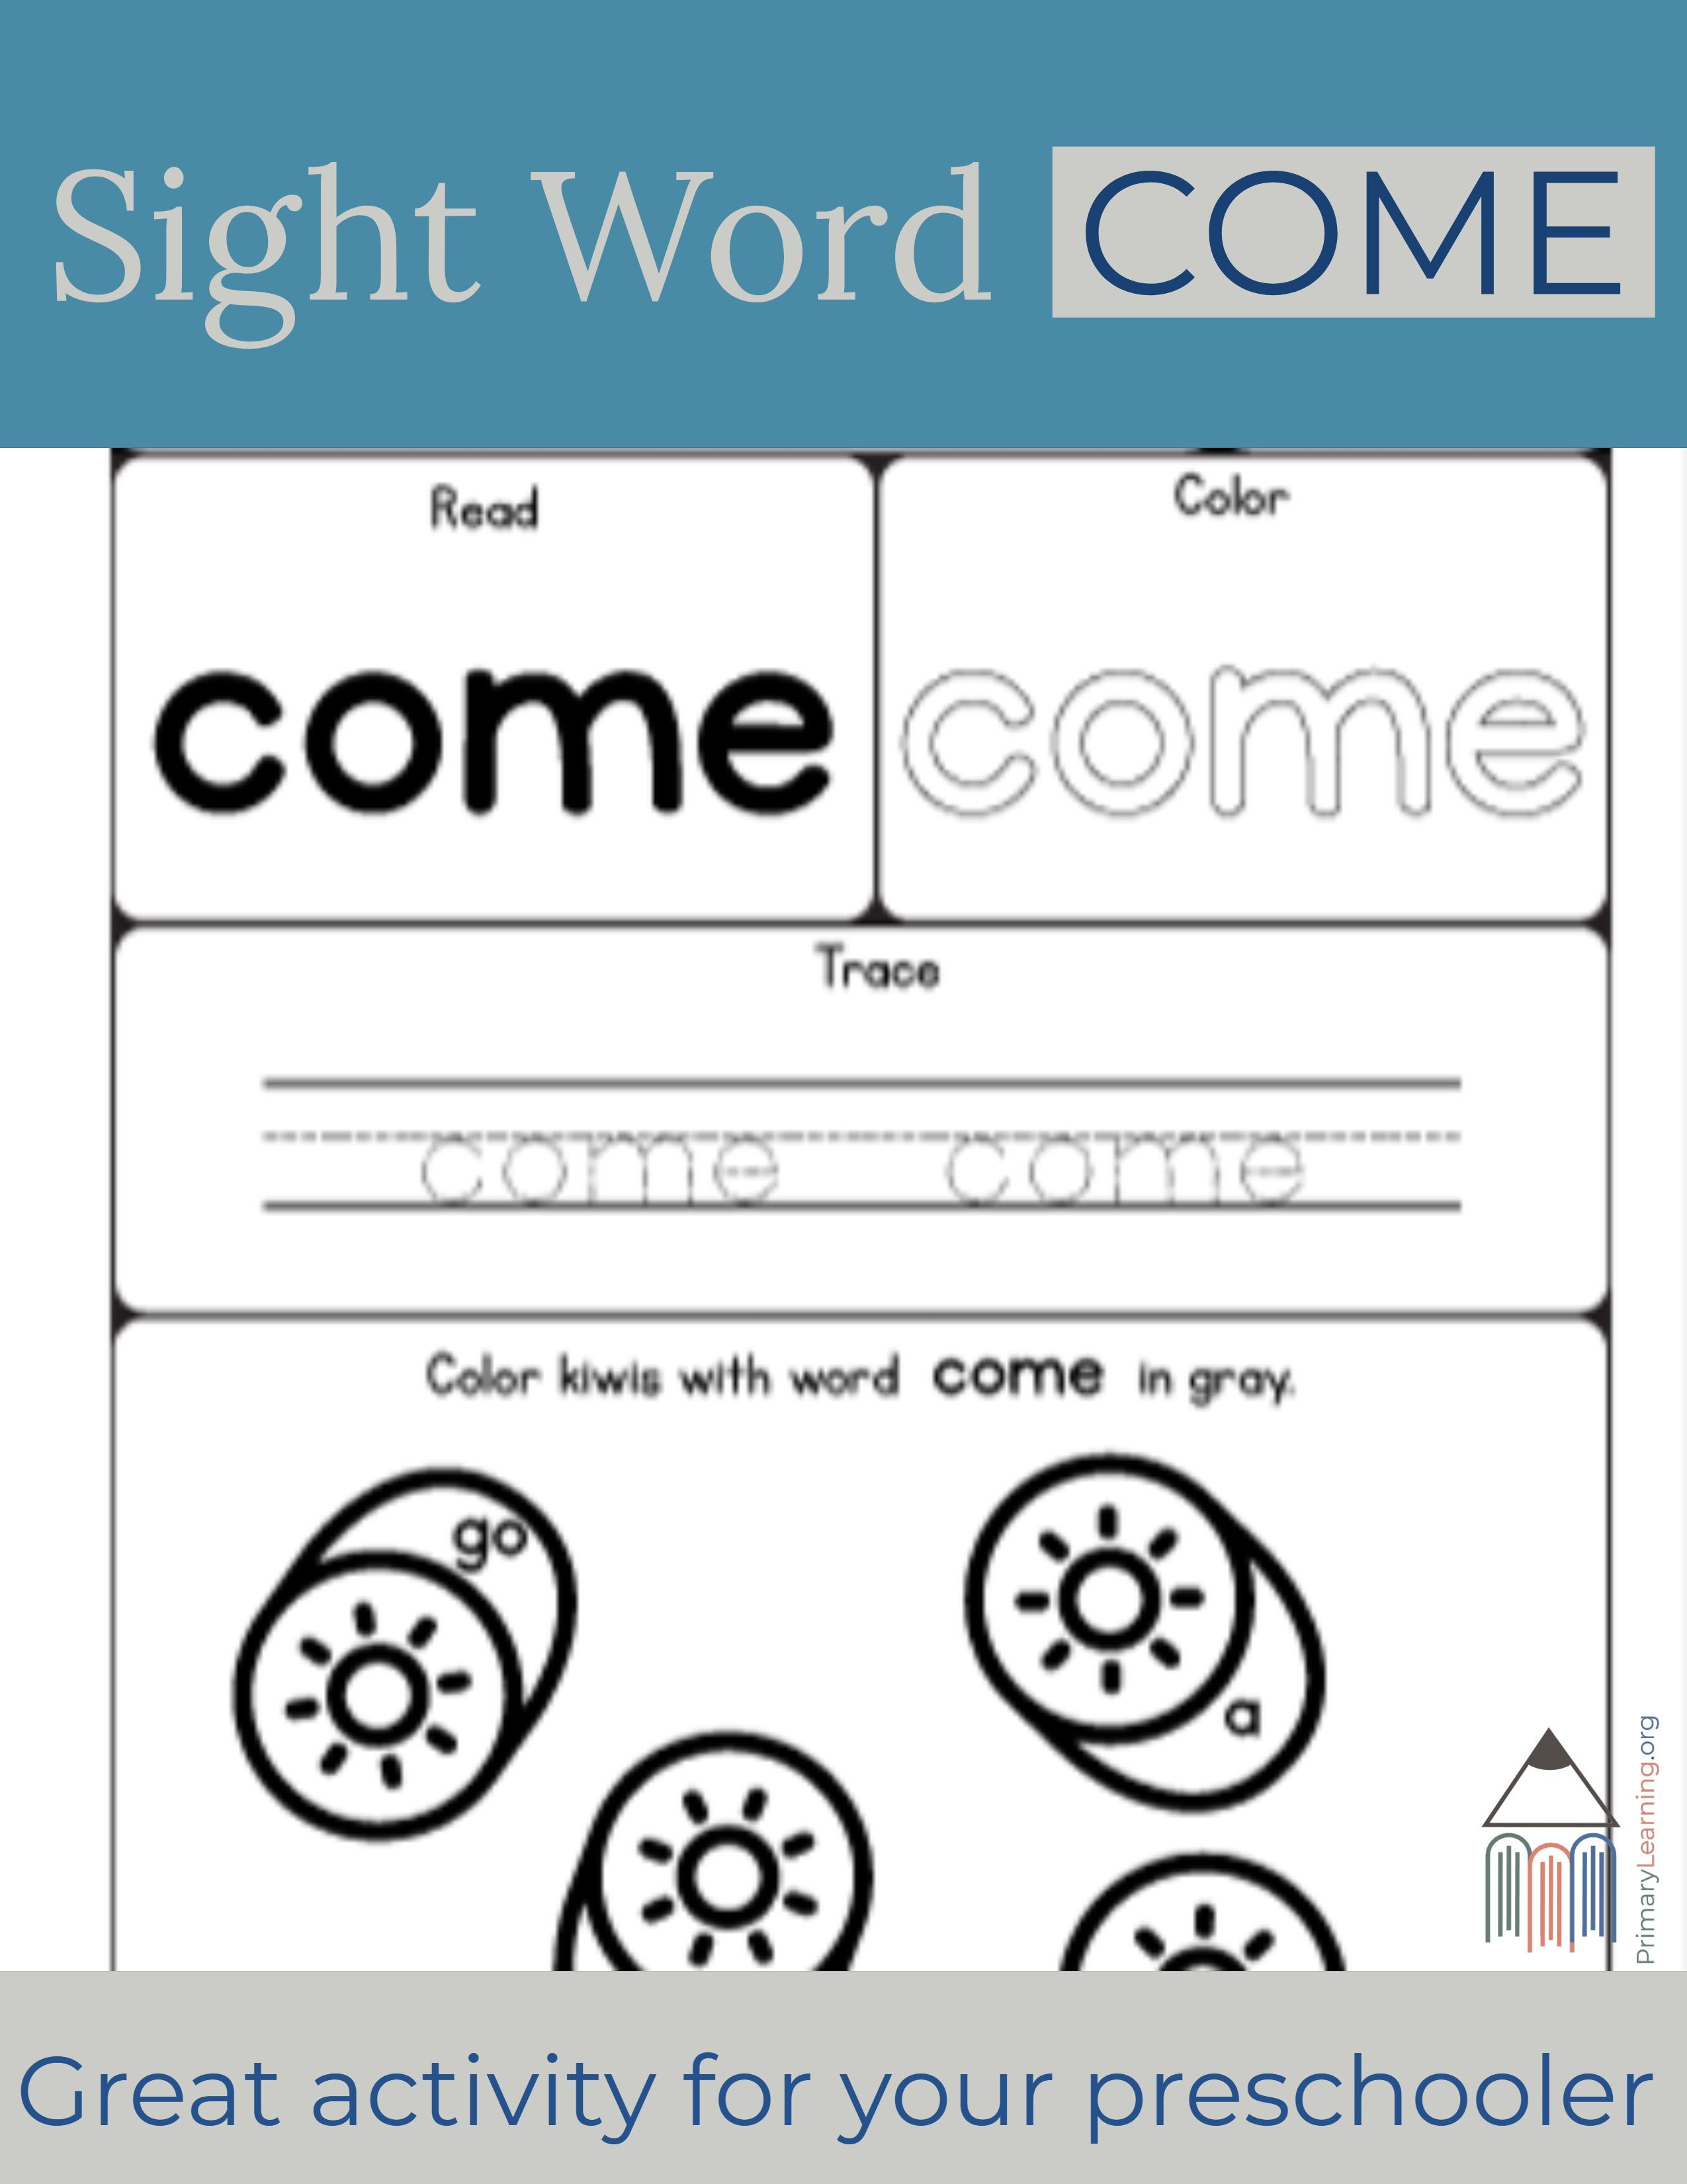 Sight Word Come Worksheet Primarylearning Org Learning Sight Words Sight Words Sight Word Worksheets